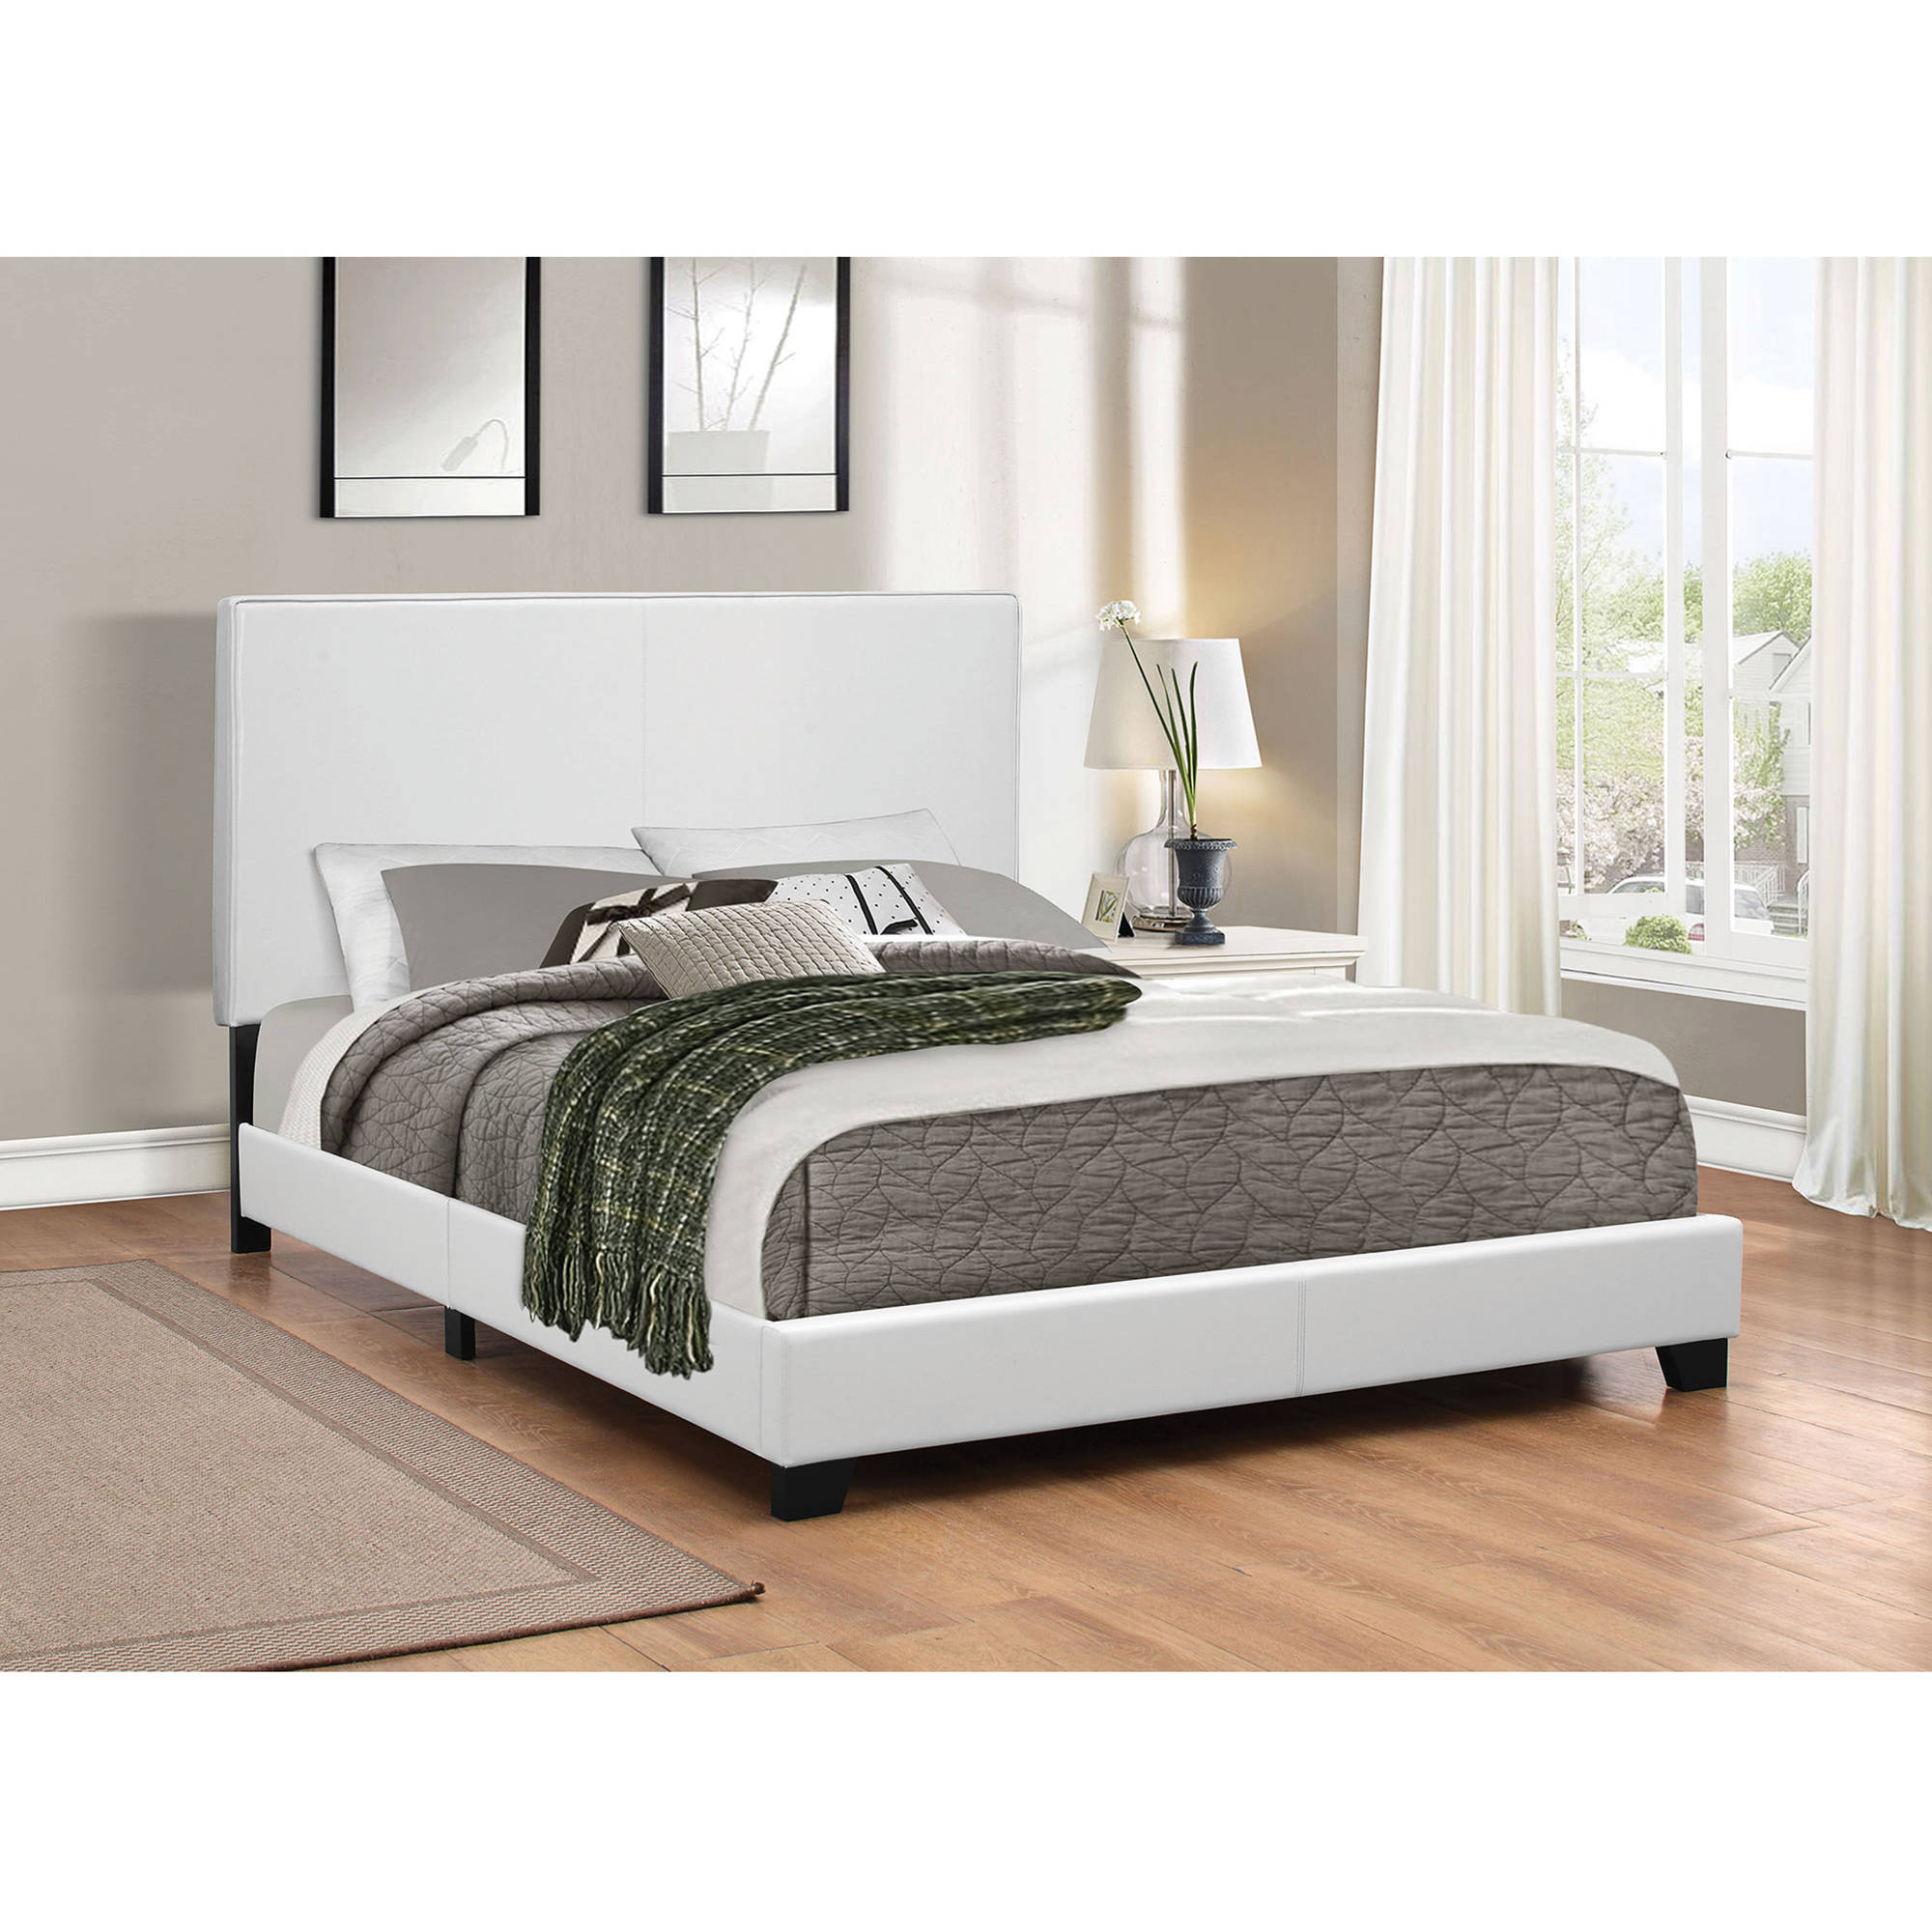 Coaster Company Mauve Upholstered Full Size Bed, White